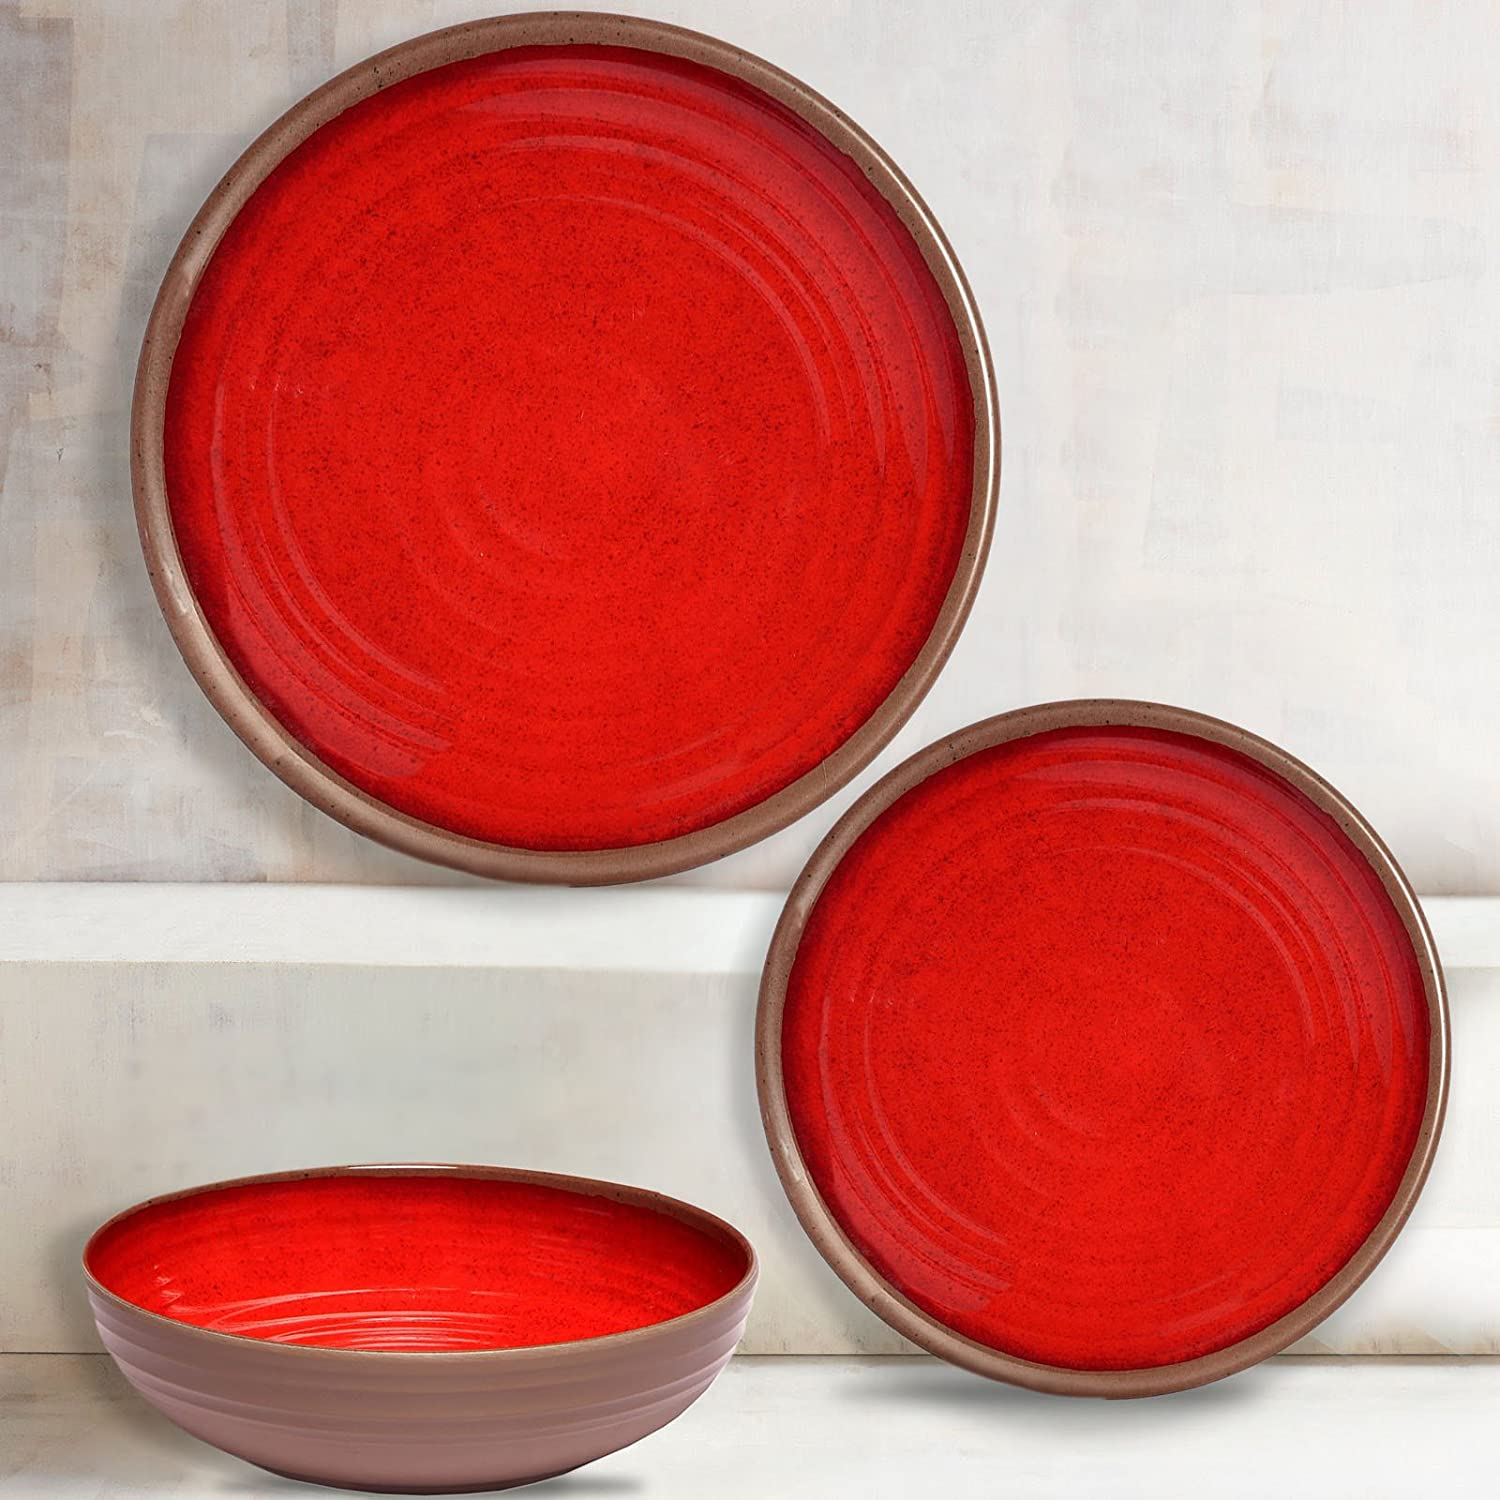 Melange 612409791221 12-Piece 100% (Clay Collection) | Shatter-Proof and Chip-Resistant Melamine Plates and Bowls | Color: Red | Dinner Plate, Salad Plate & Soup Bowl (4 Each) Ruby Compass Melamine